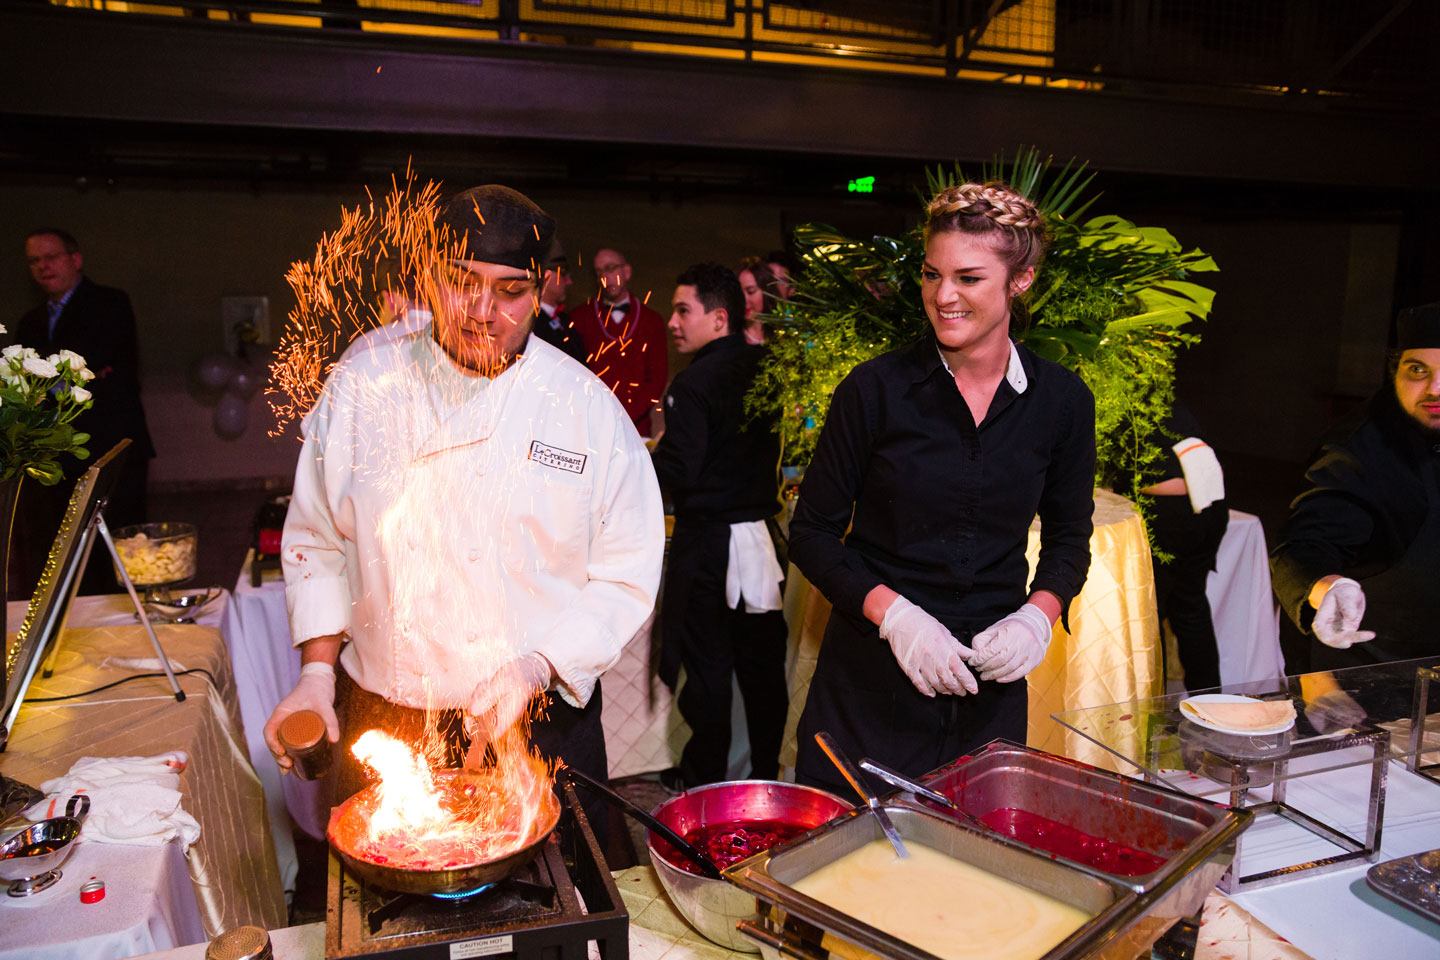 Le Croissant Catering makes cherries jubilee for the Oscar Night Gala